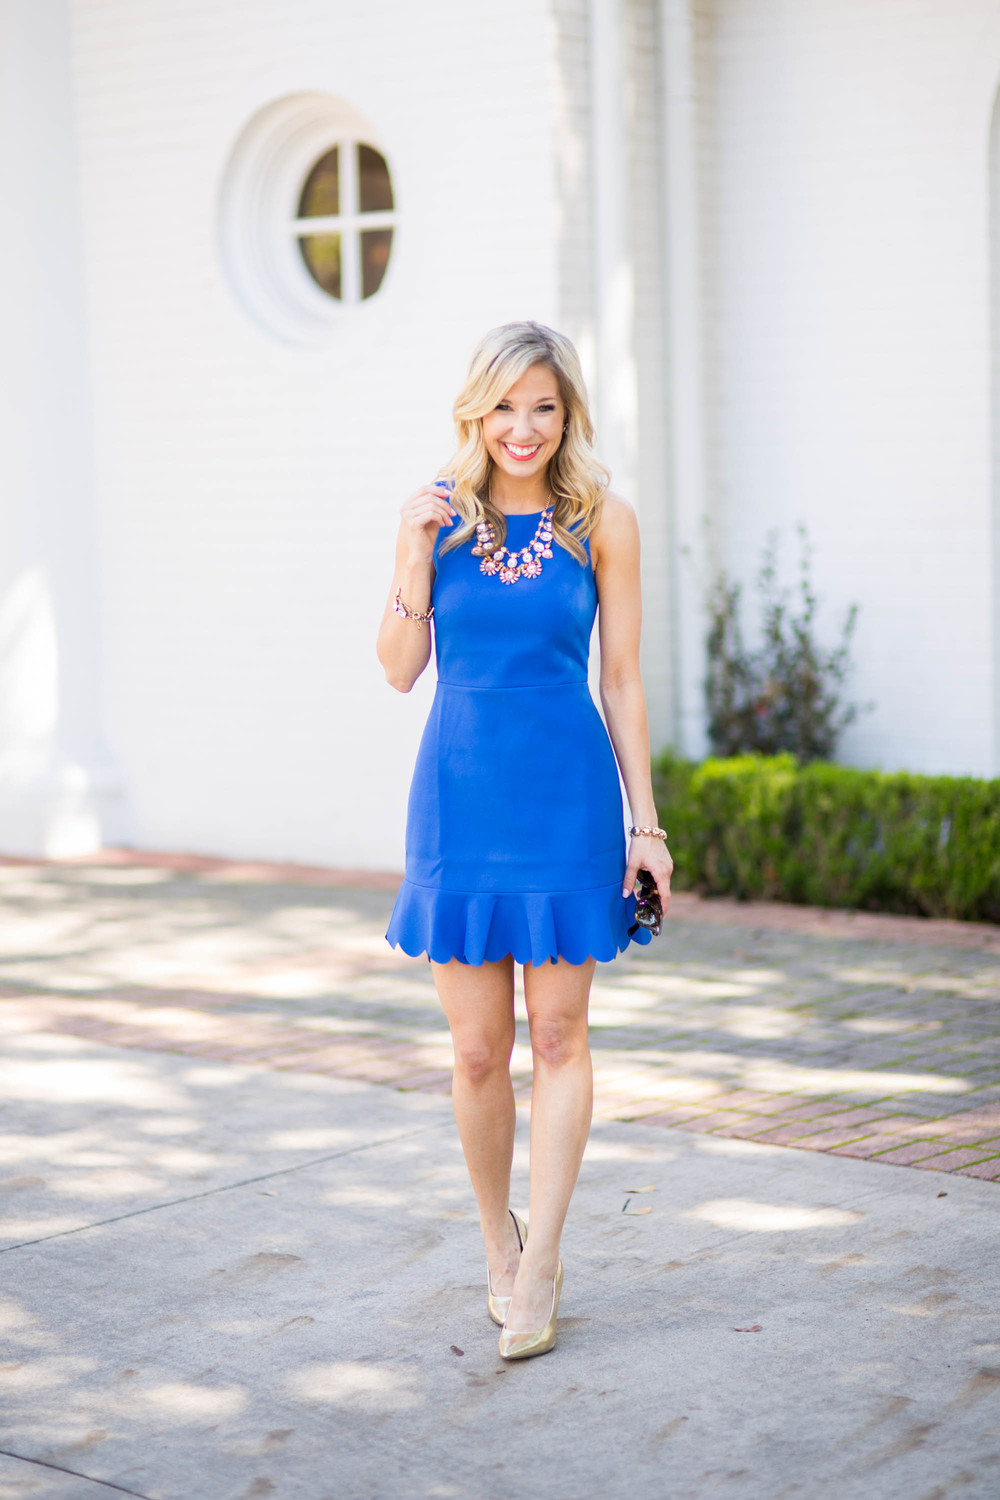 Spring Dress / J.Crew / Cocktail Dress / Statement Necklace / Accessory Jane